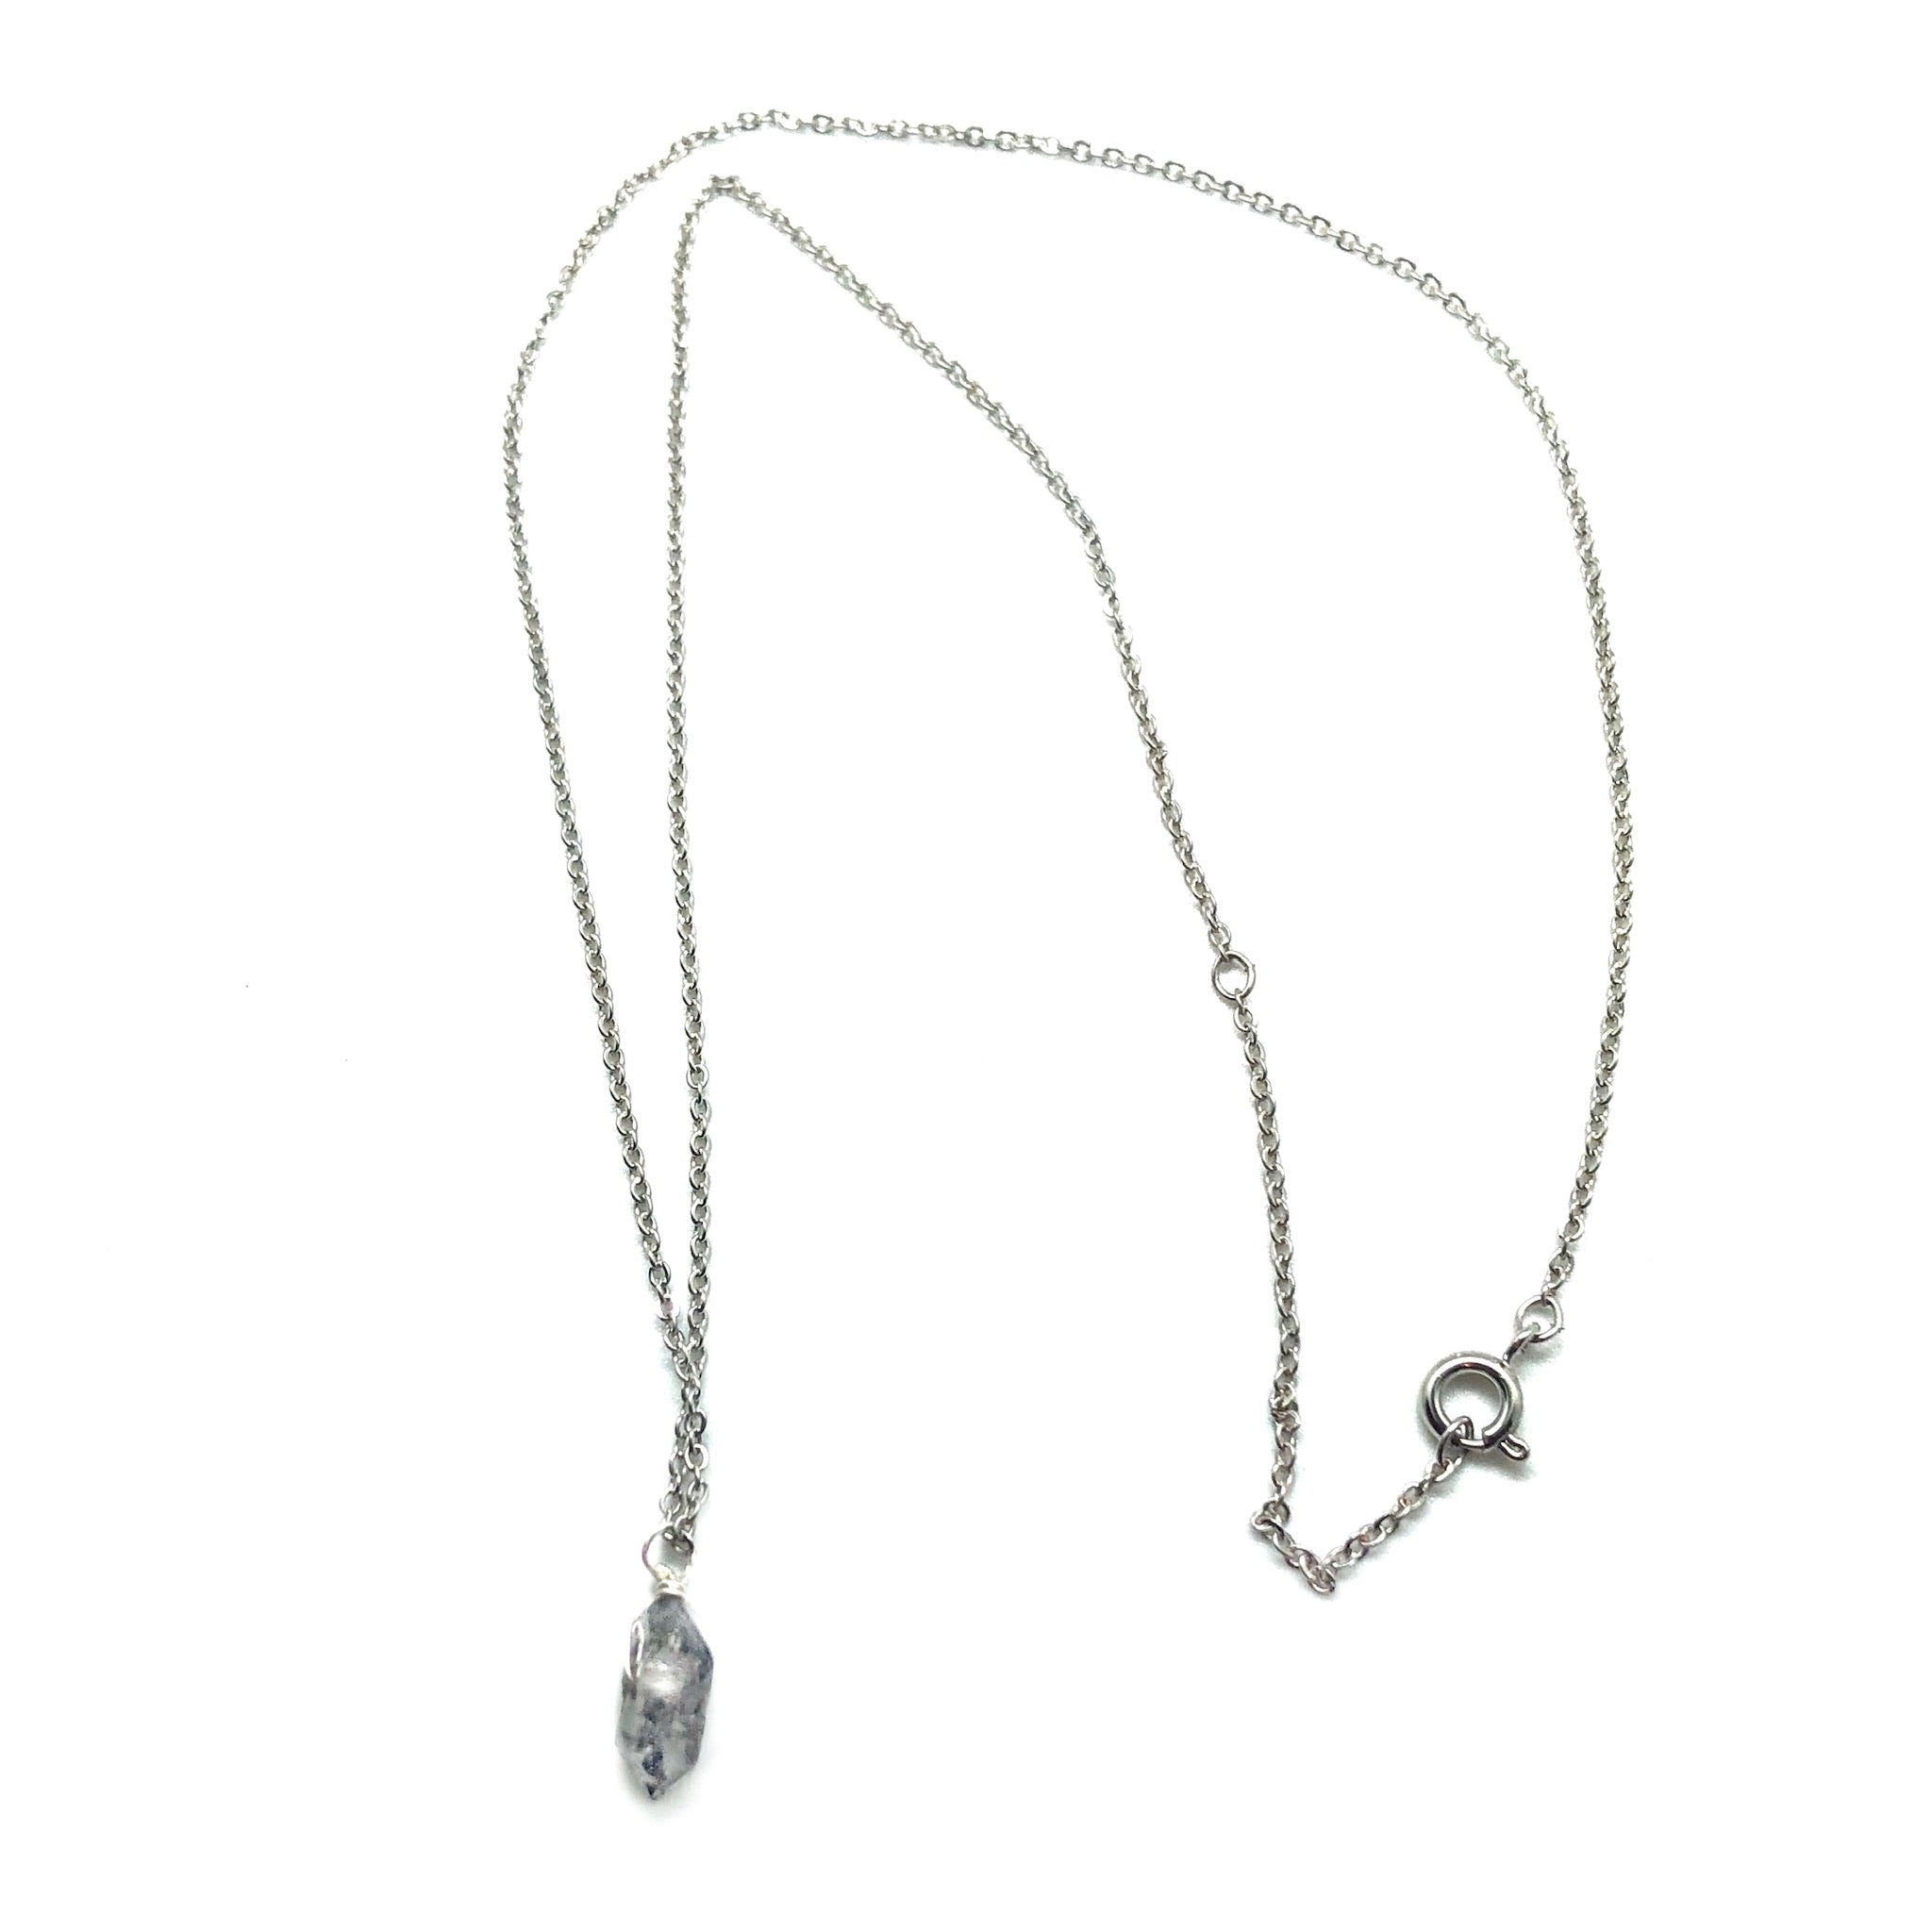 Silver Herkimer Diamond Necklace